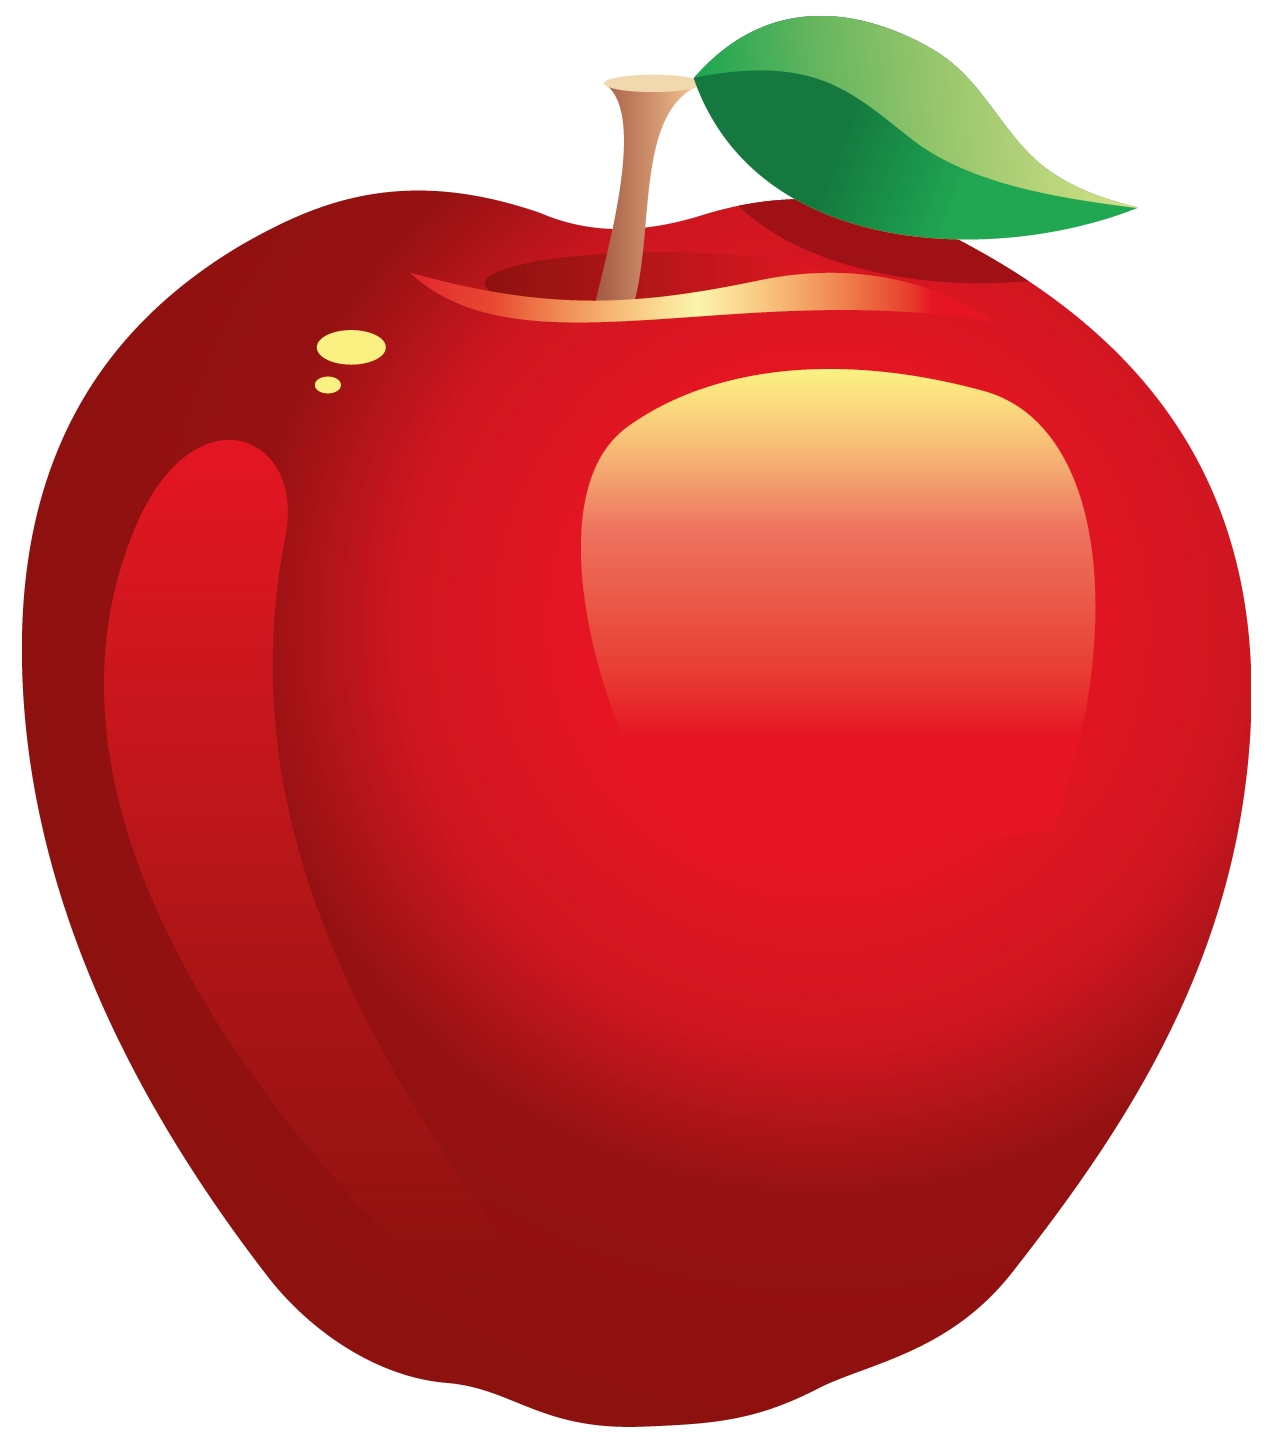 Realistic Vector Red Apple Clipart.